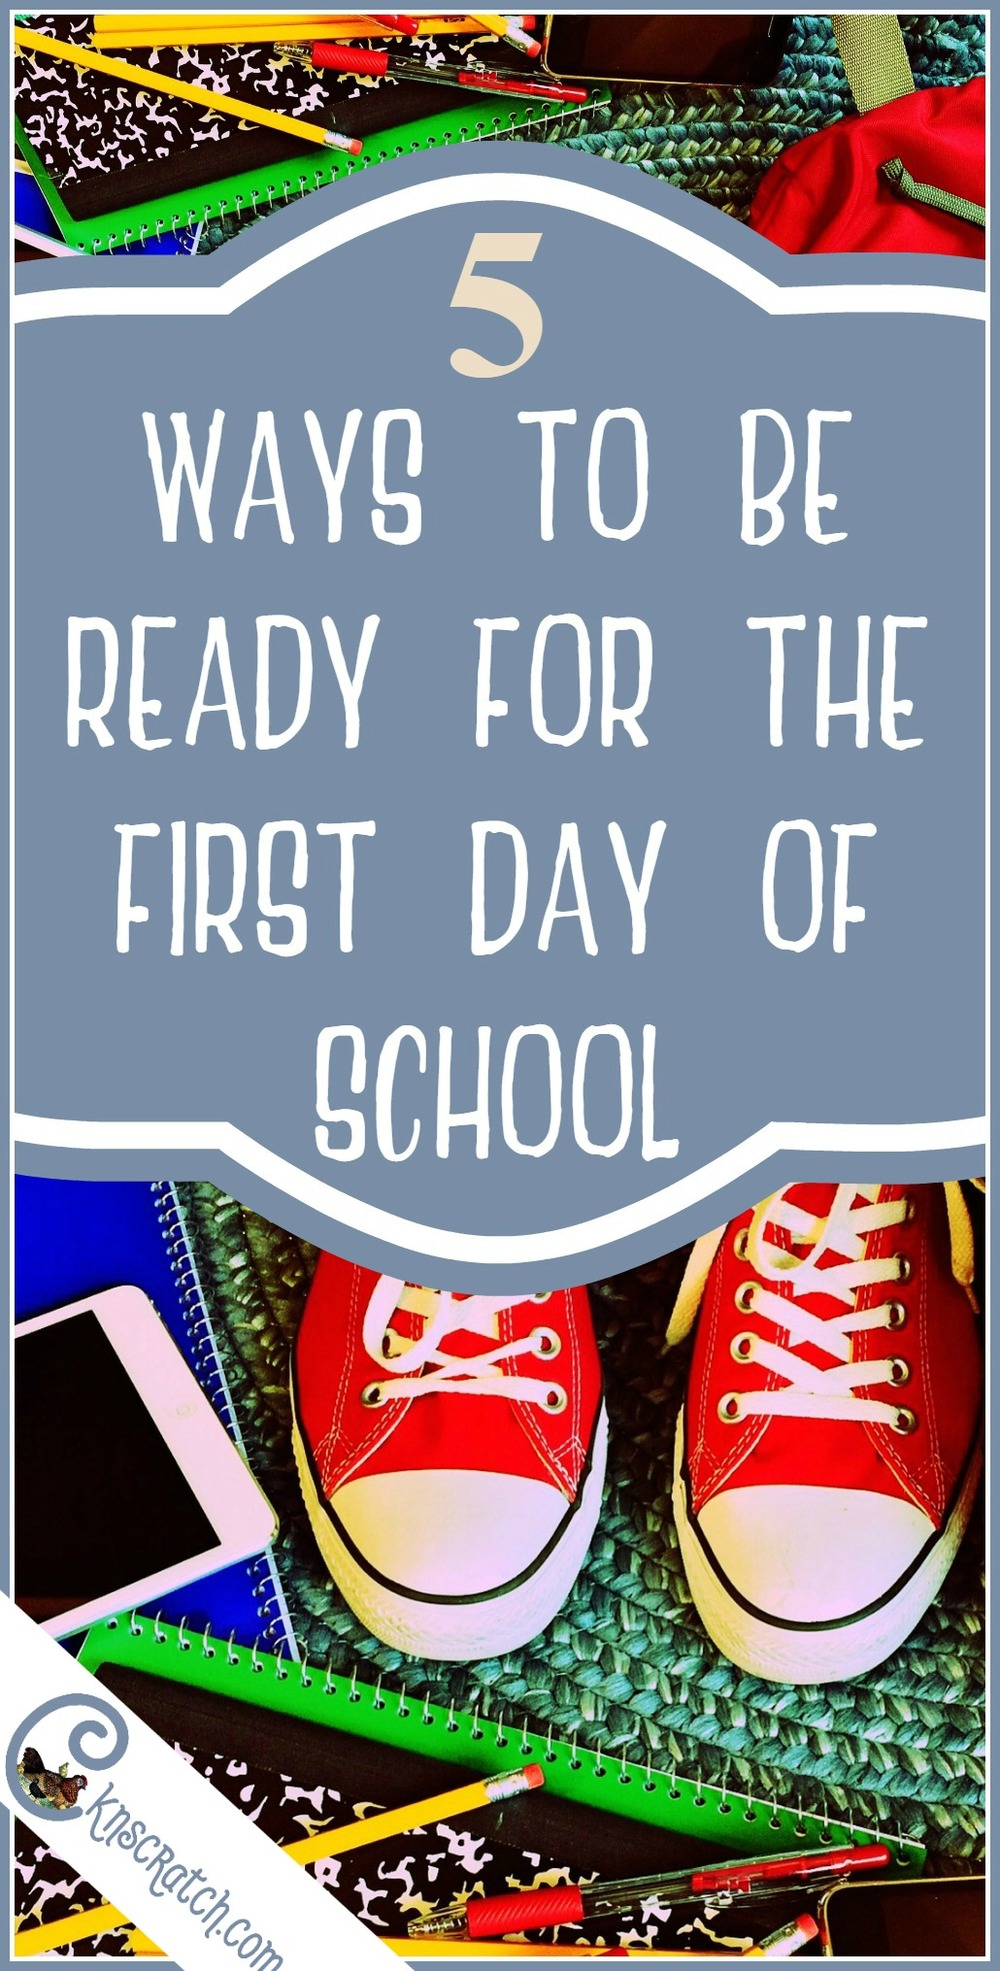 Beyond school supplies- 5 ways to be ready for the first day of school